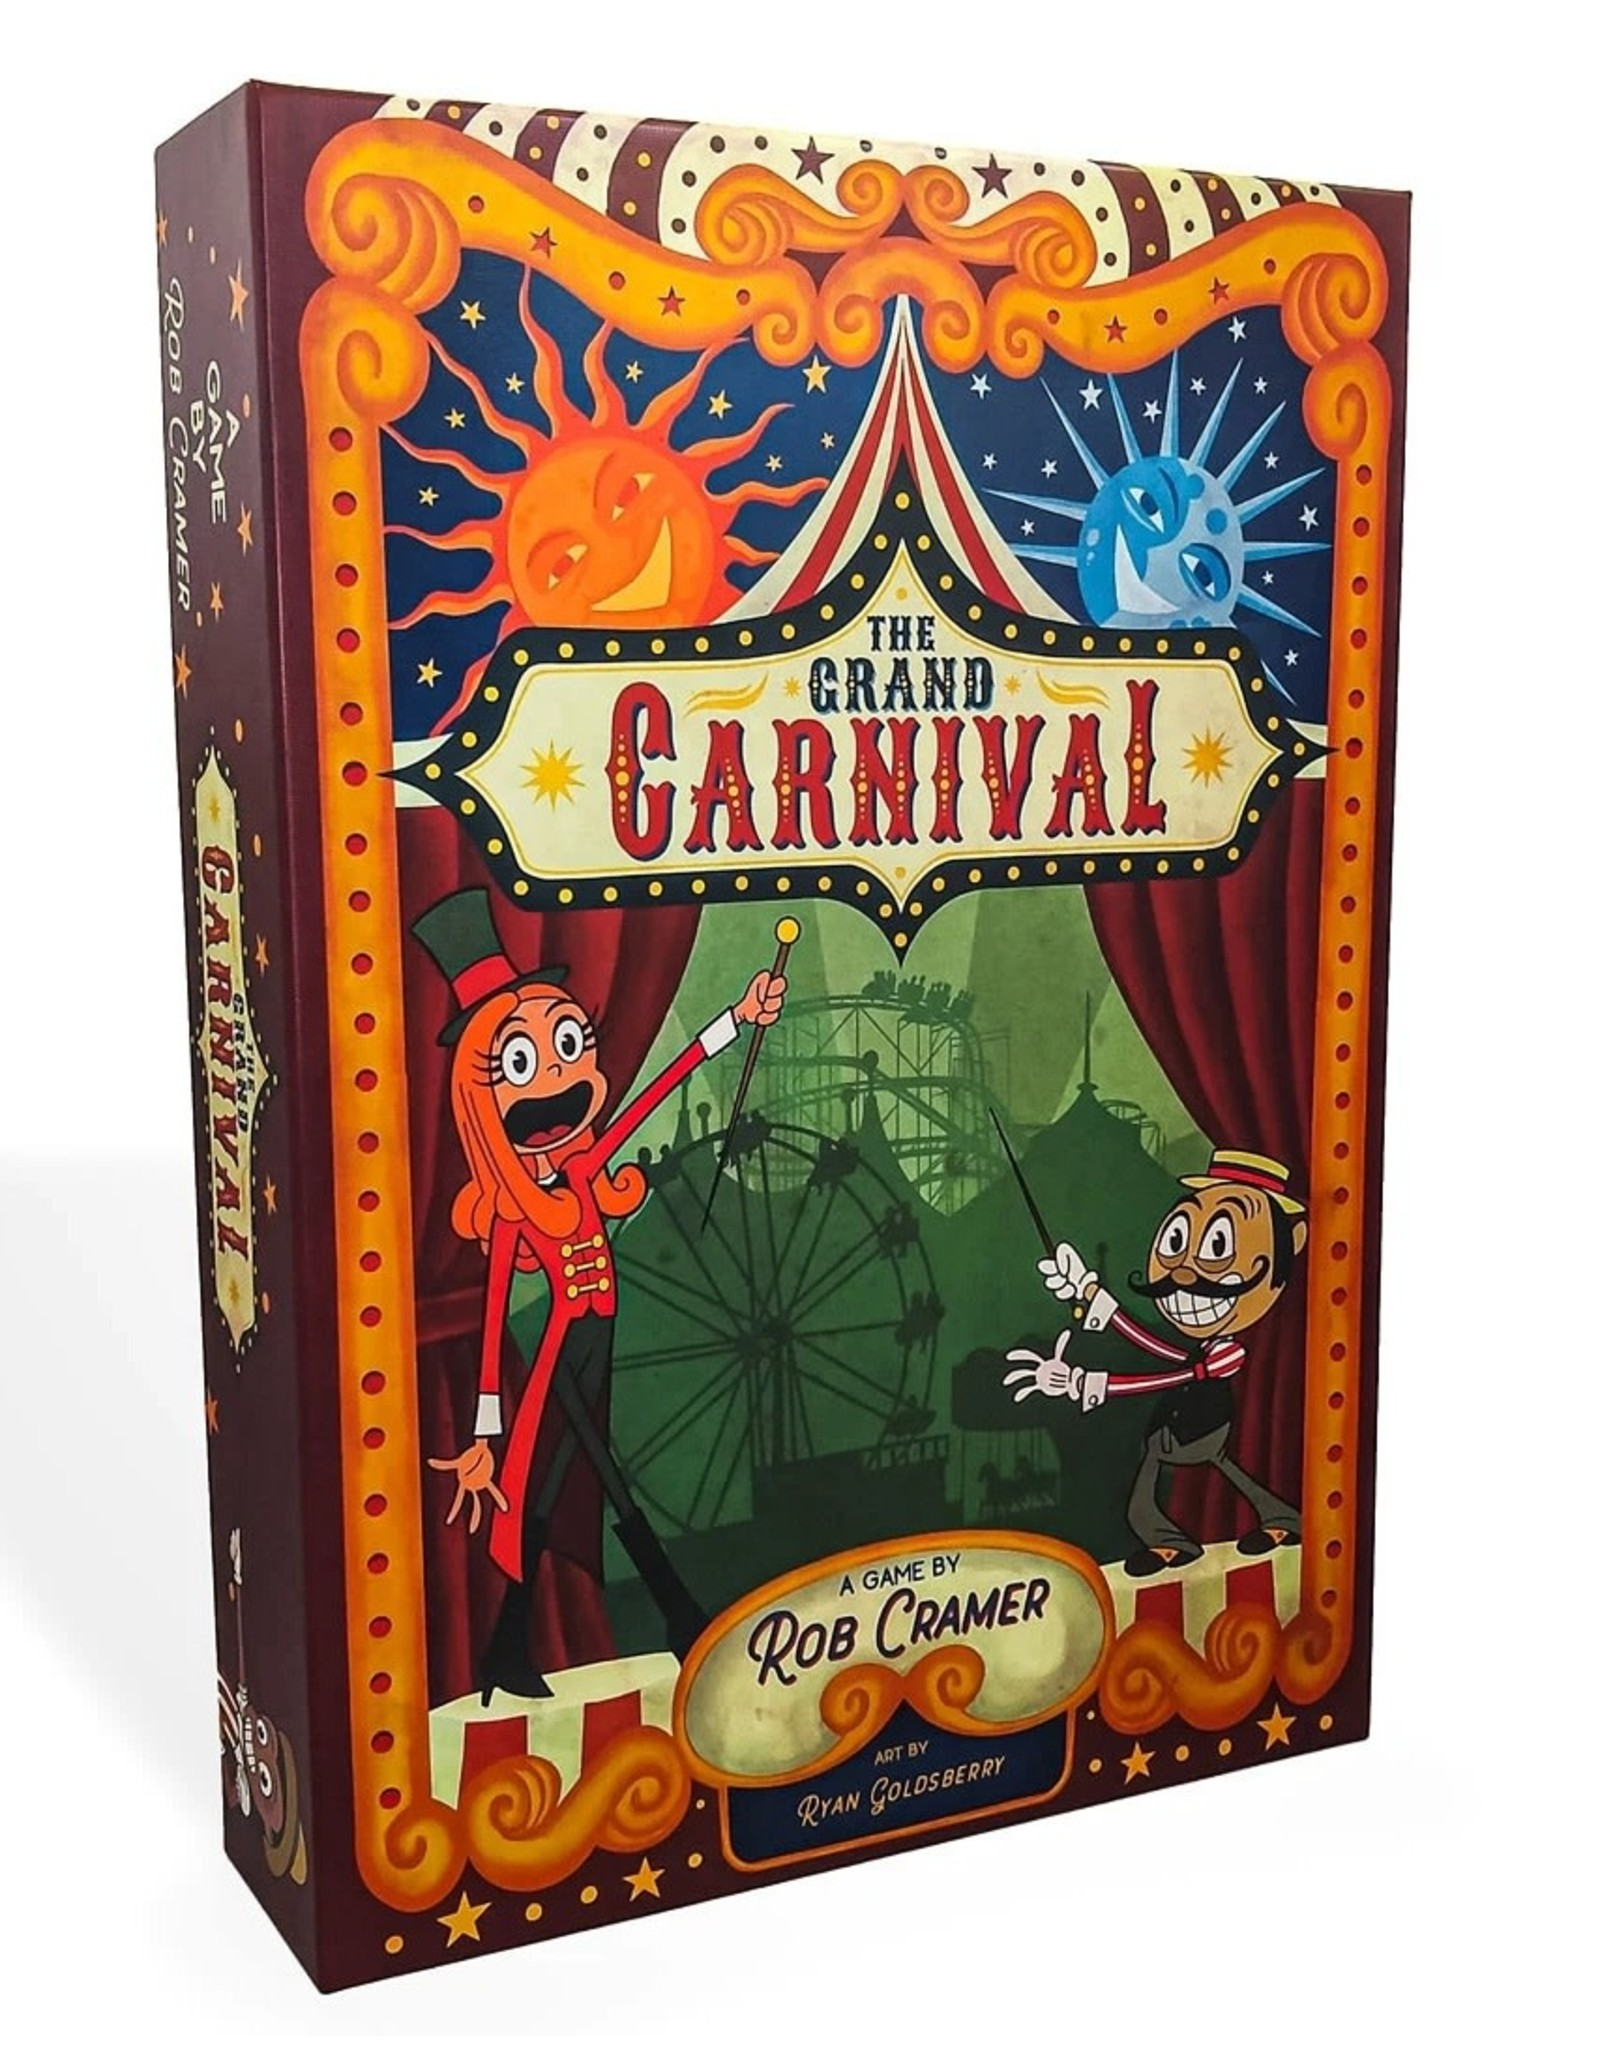 Uproarious The Grand Carnival